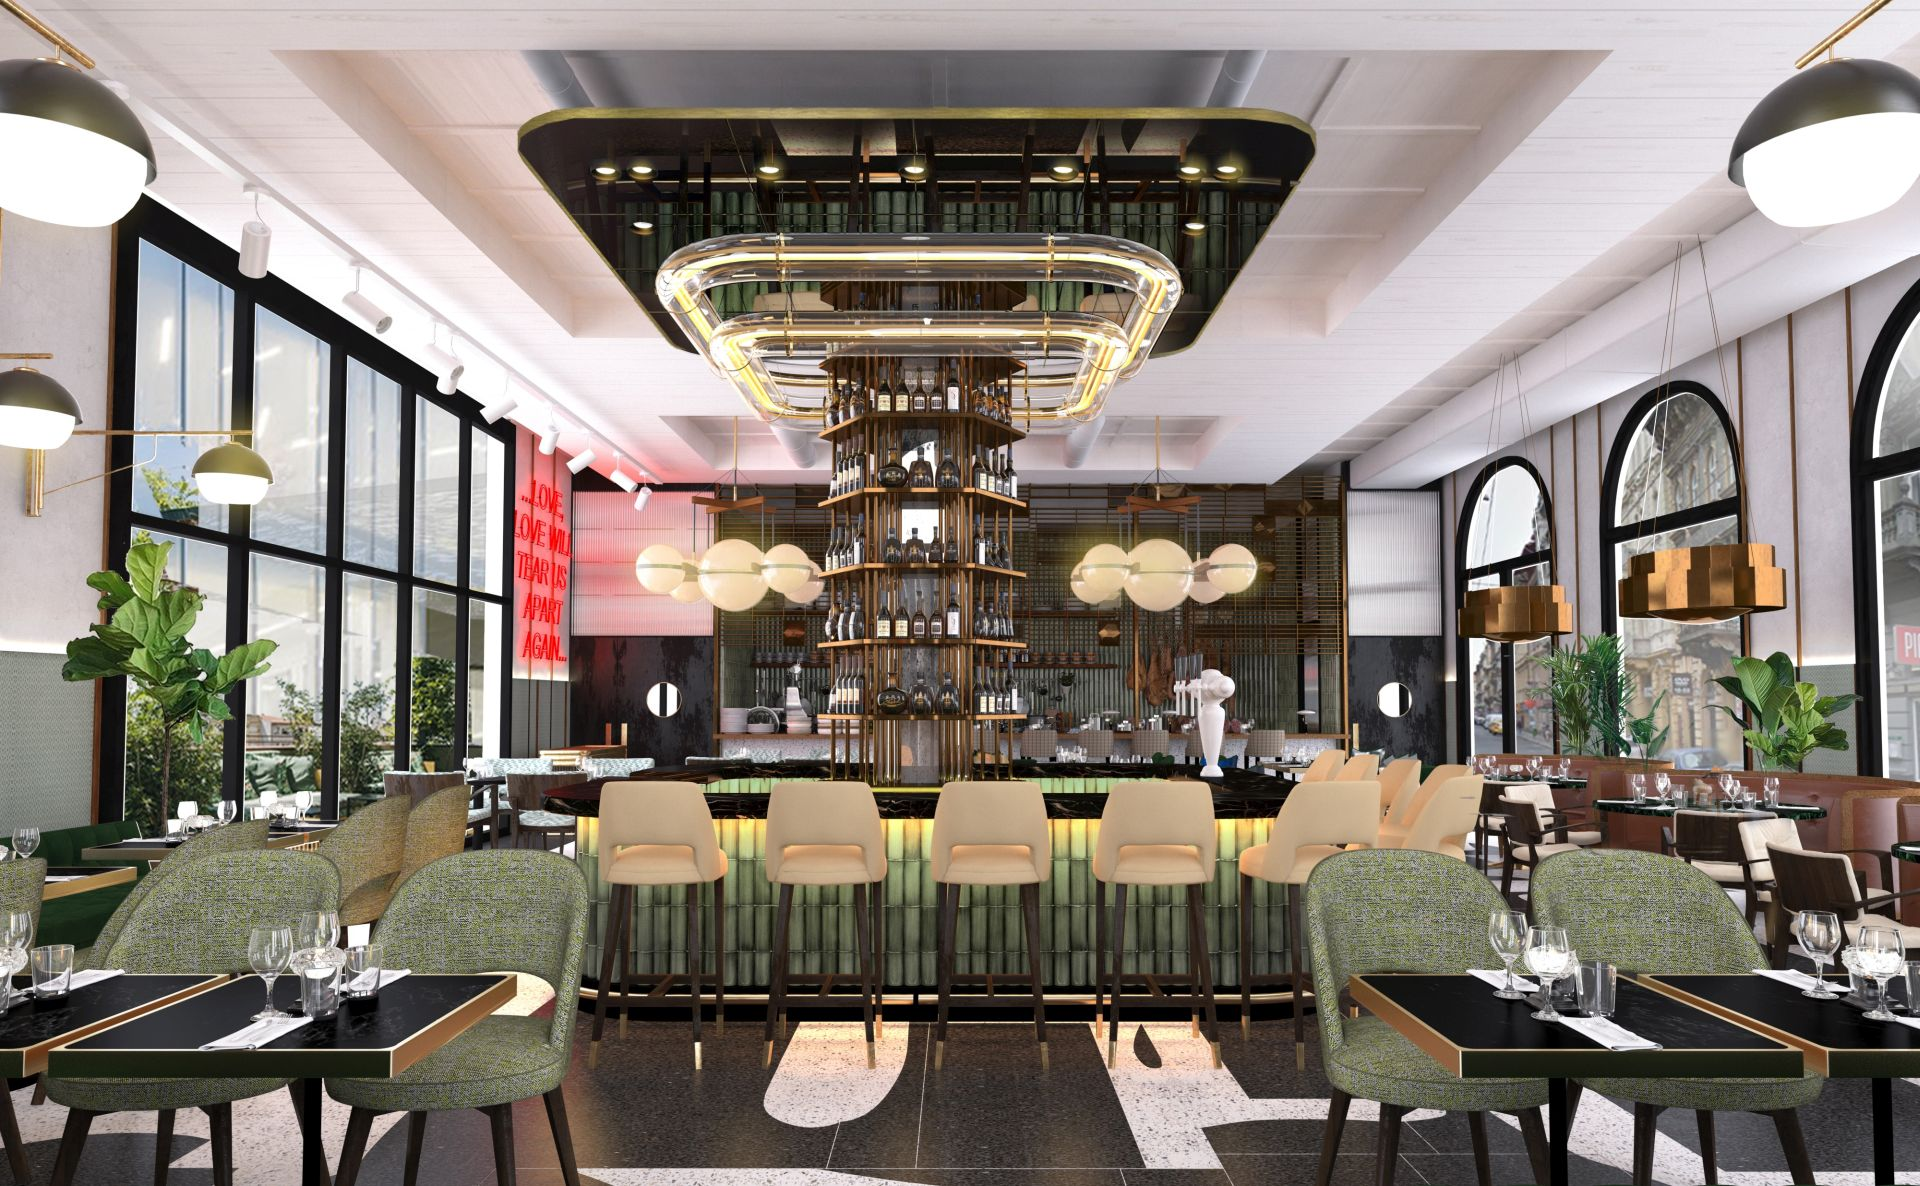 A Brand New Restaurant From Hard Rock Hotels Brings Fresh Vibes To Budapest